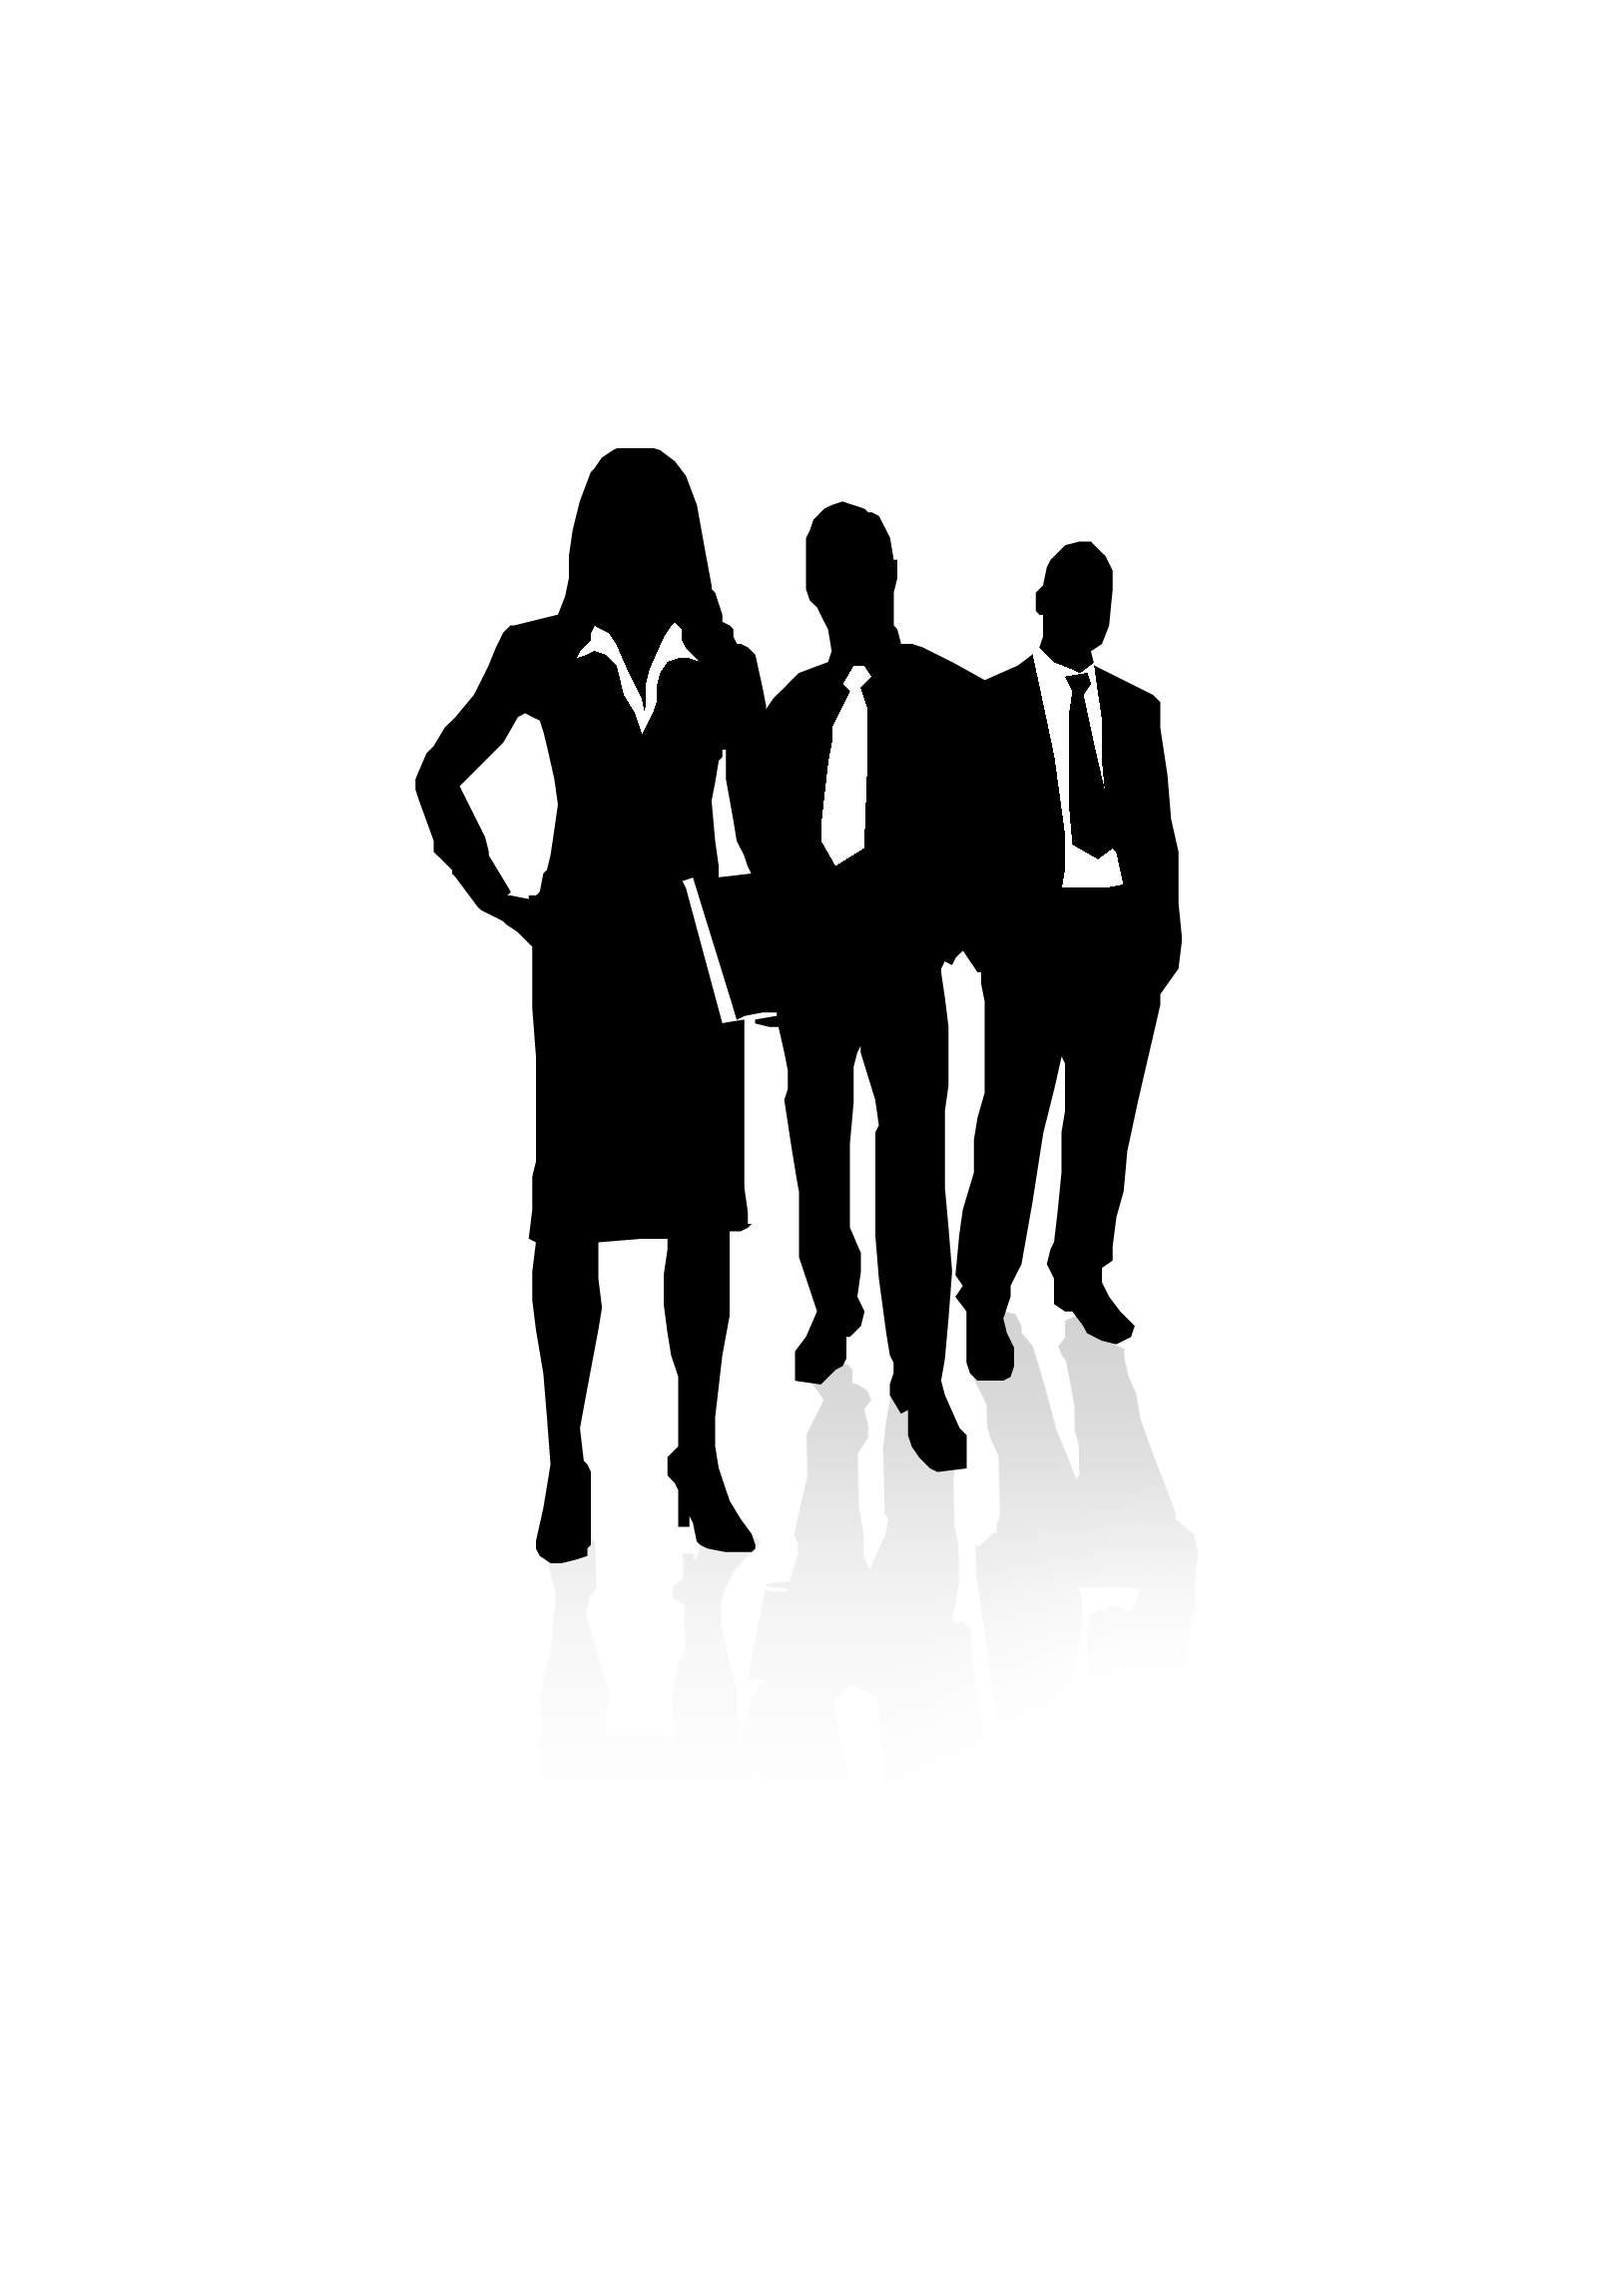 hight resolution of business people images free download clipart